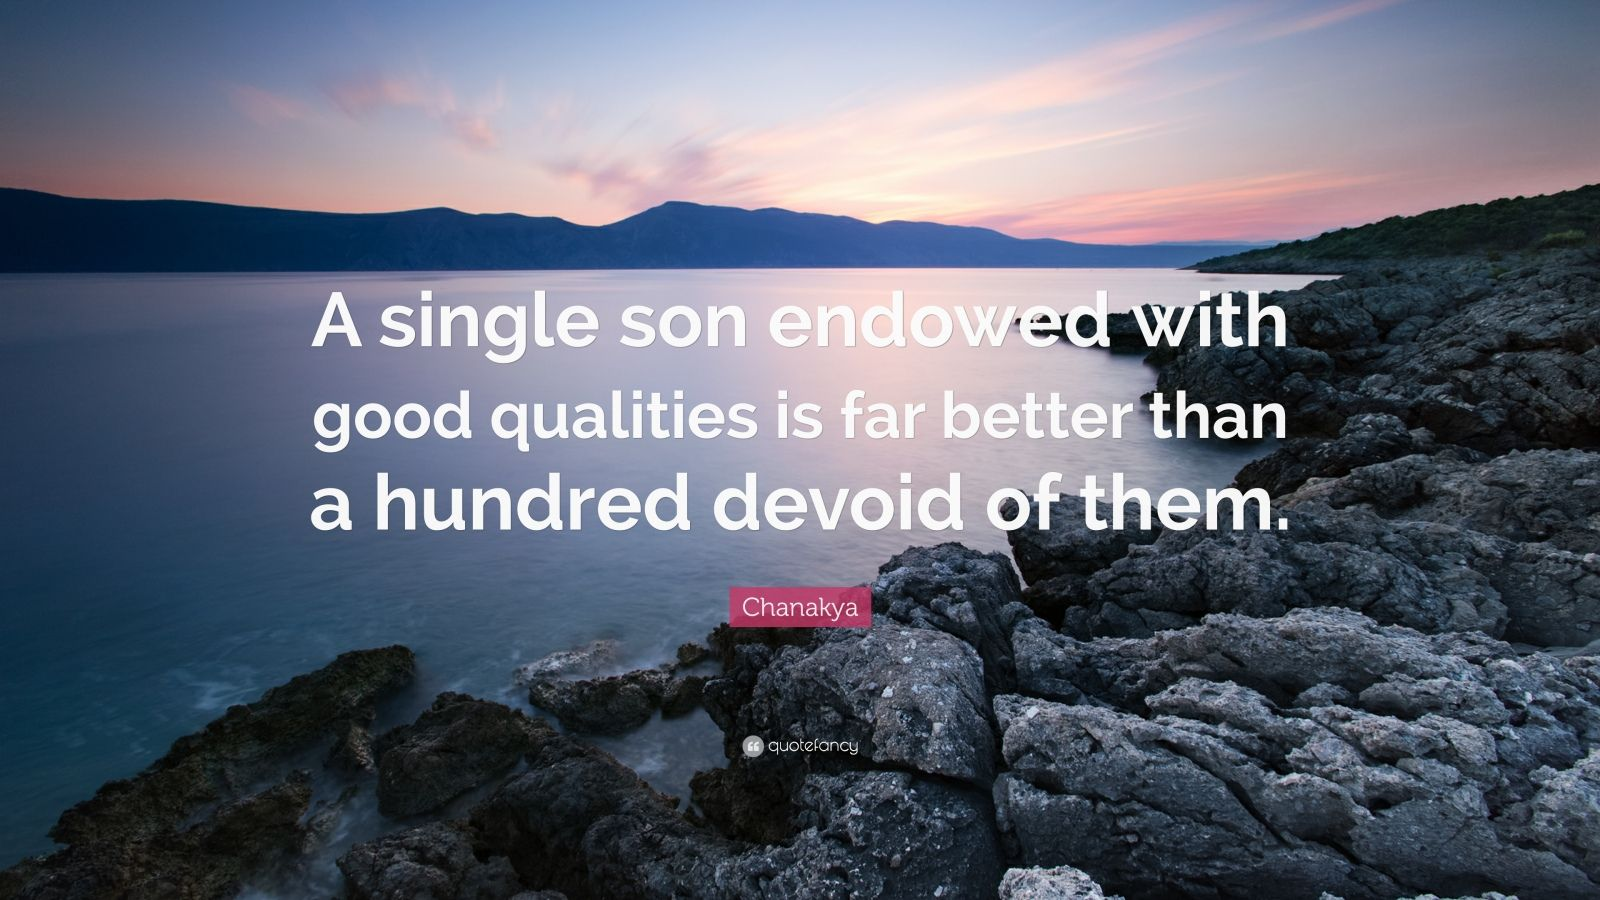 """Chanakya Quote: """"A single son endowed with good qualities is far better than a hundred devoid of them."""""""